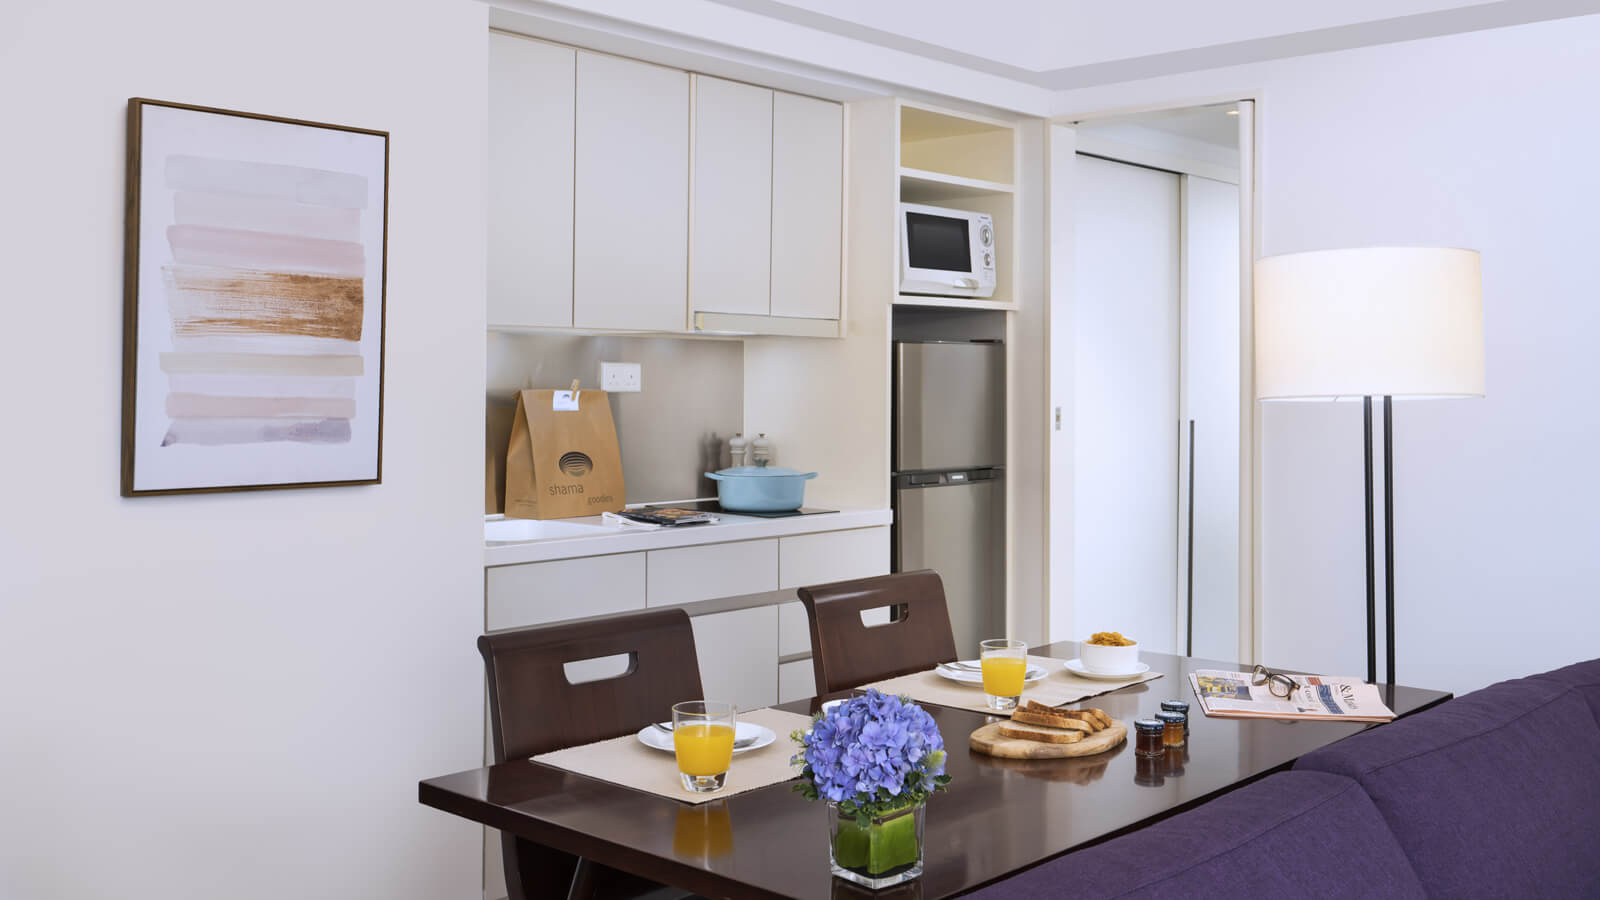 Two Bedroom with Terrace - Dining Area Kitchen